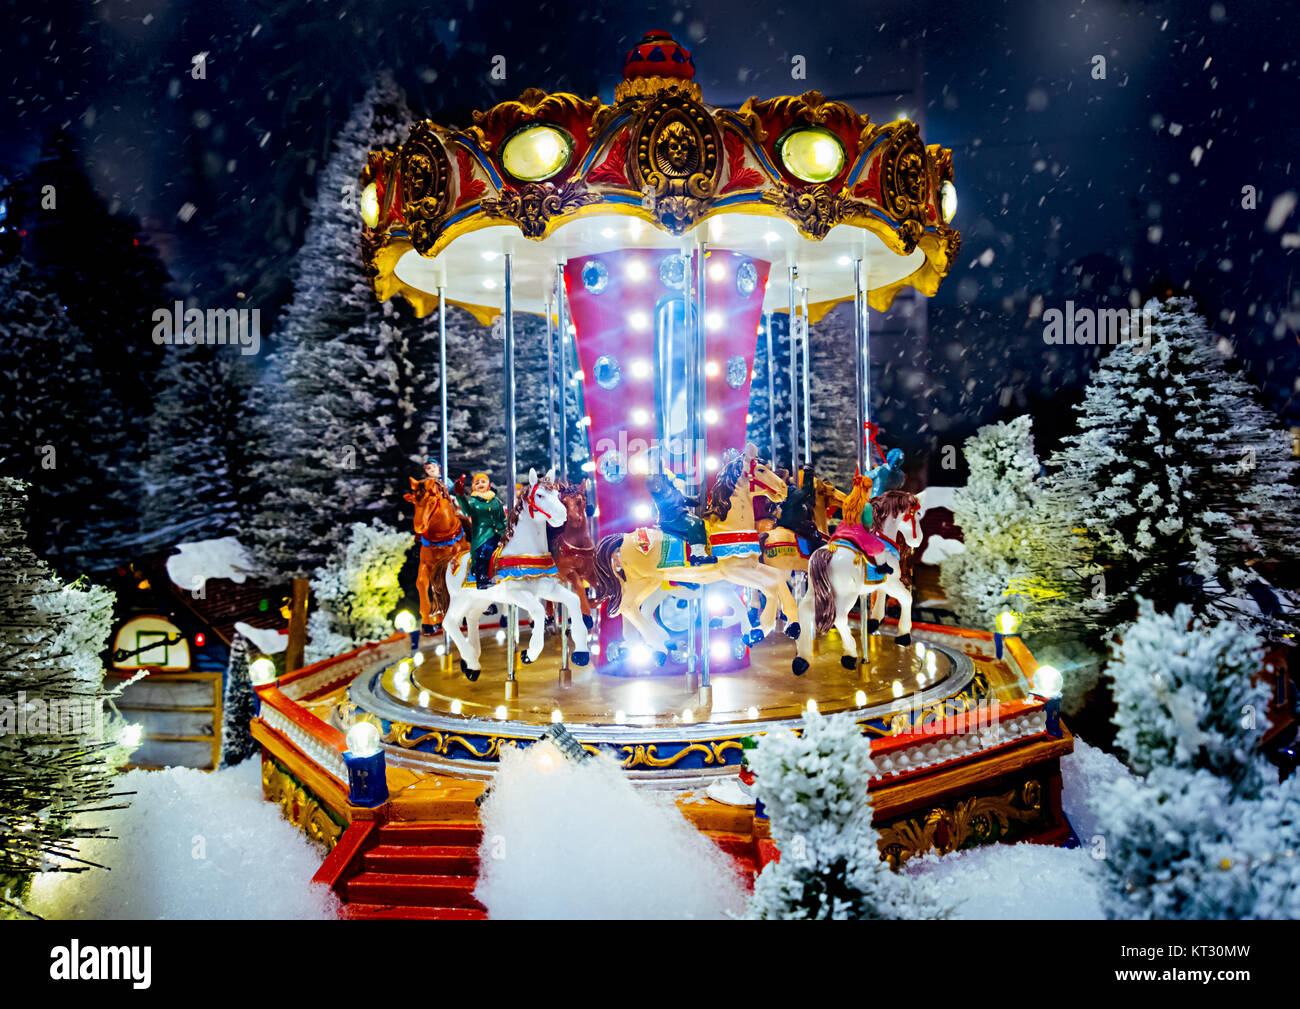 miniature christmas village scene christmas decorations toys stock image